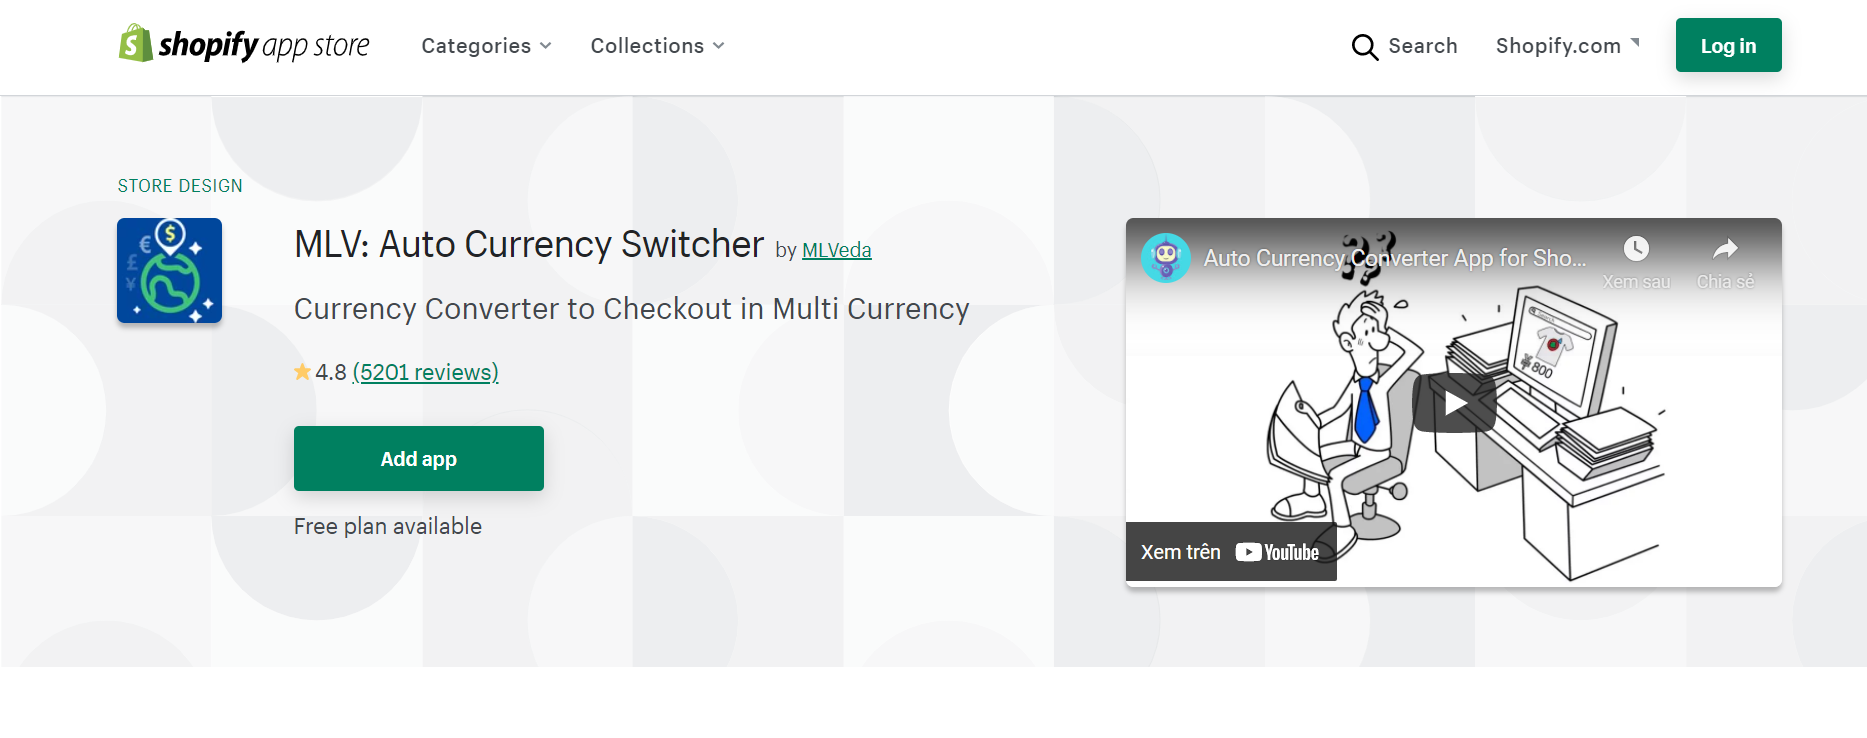 mlv auto currency switcher